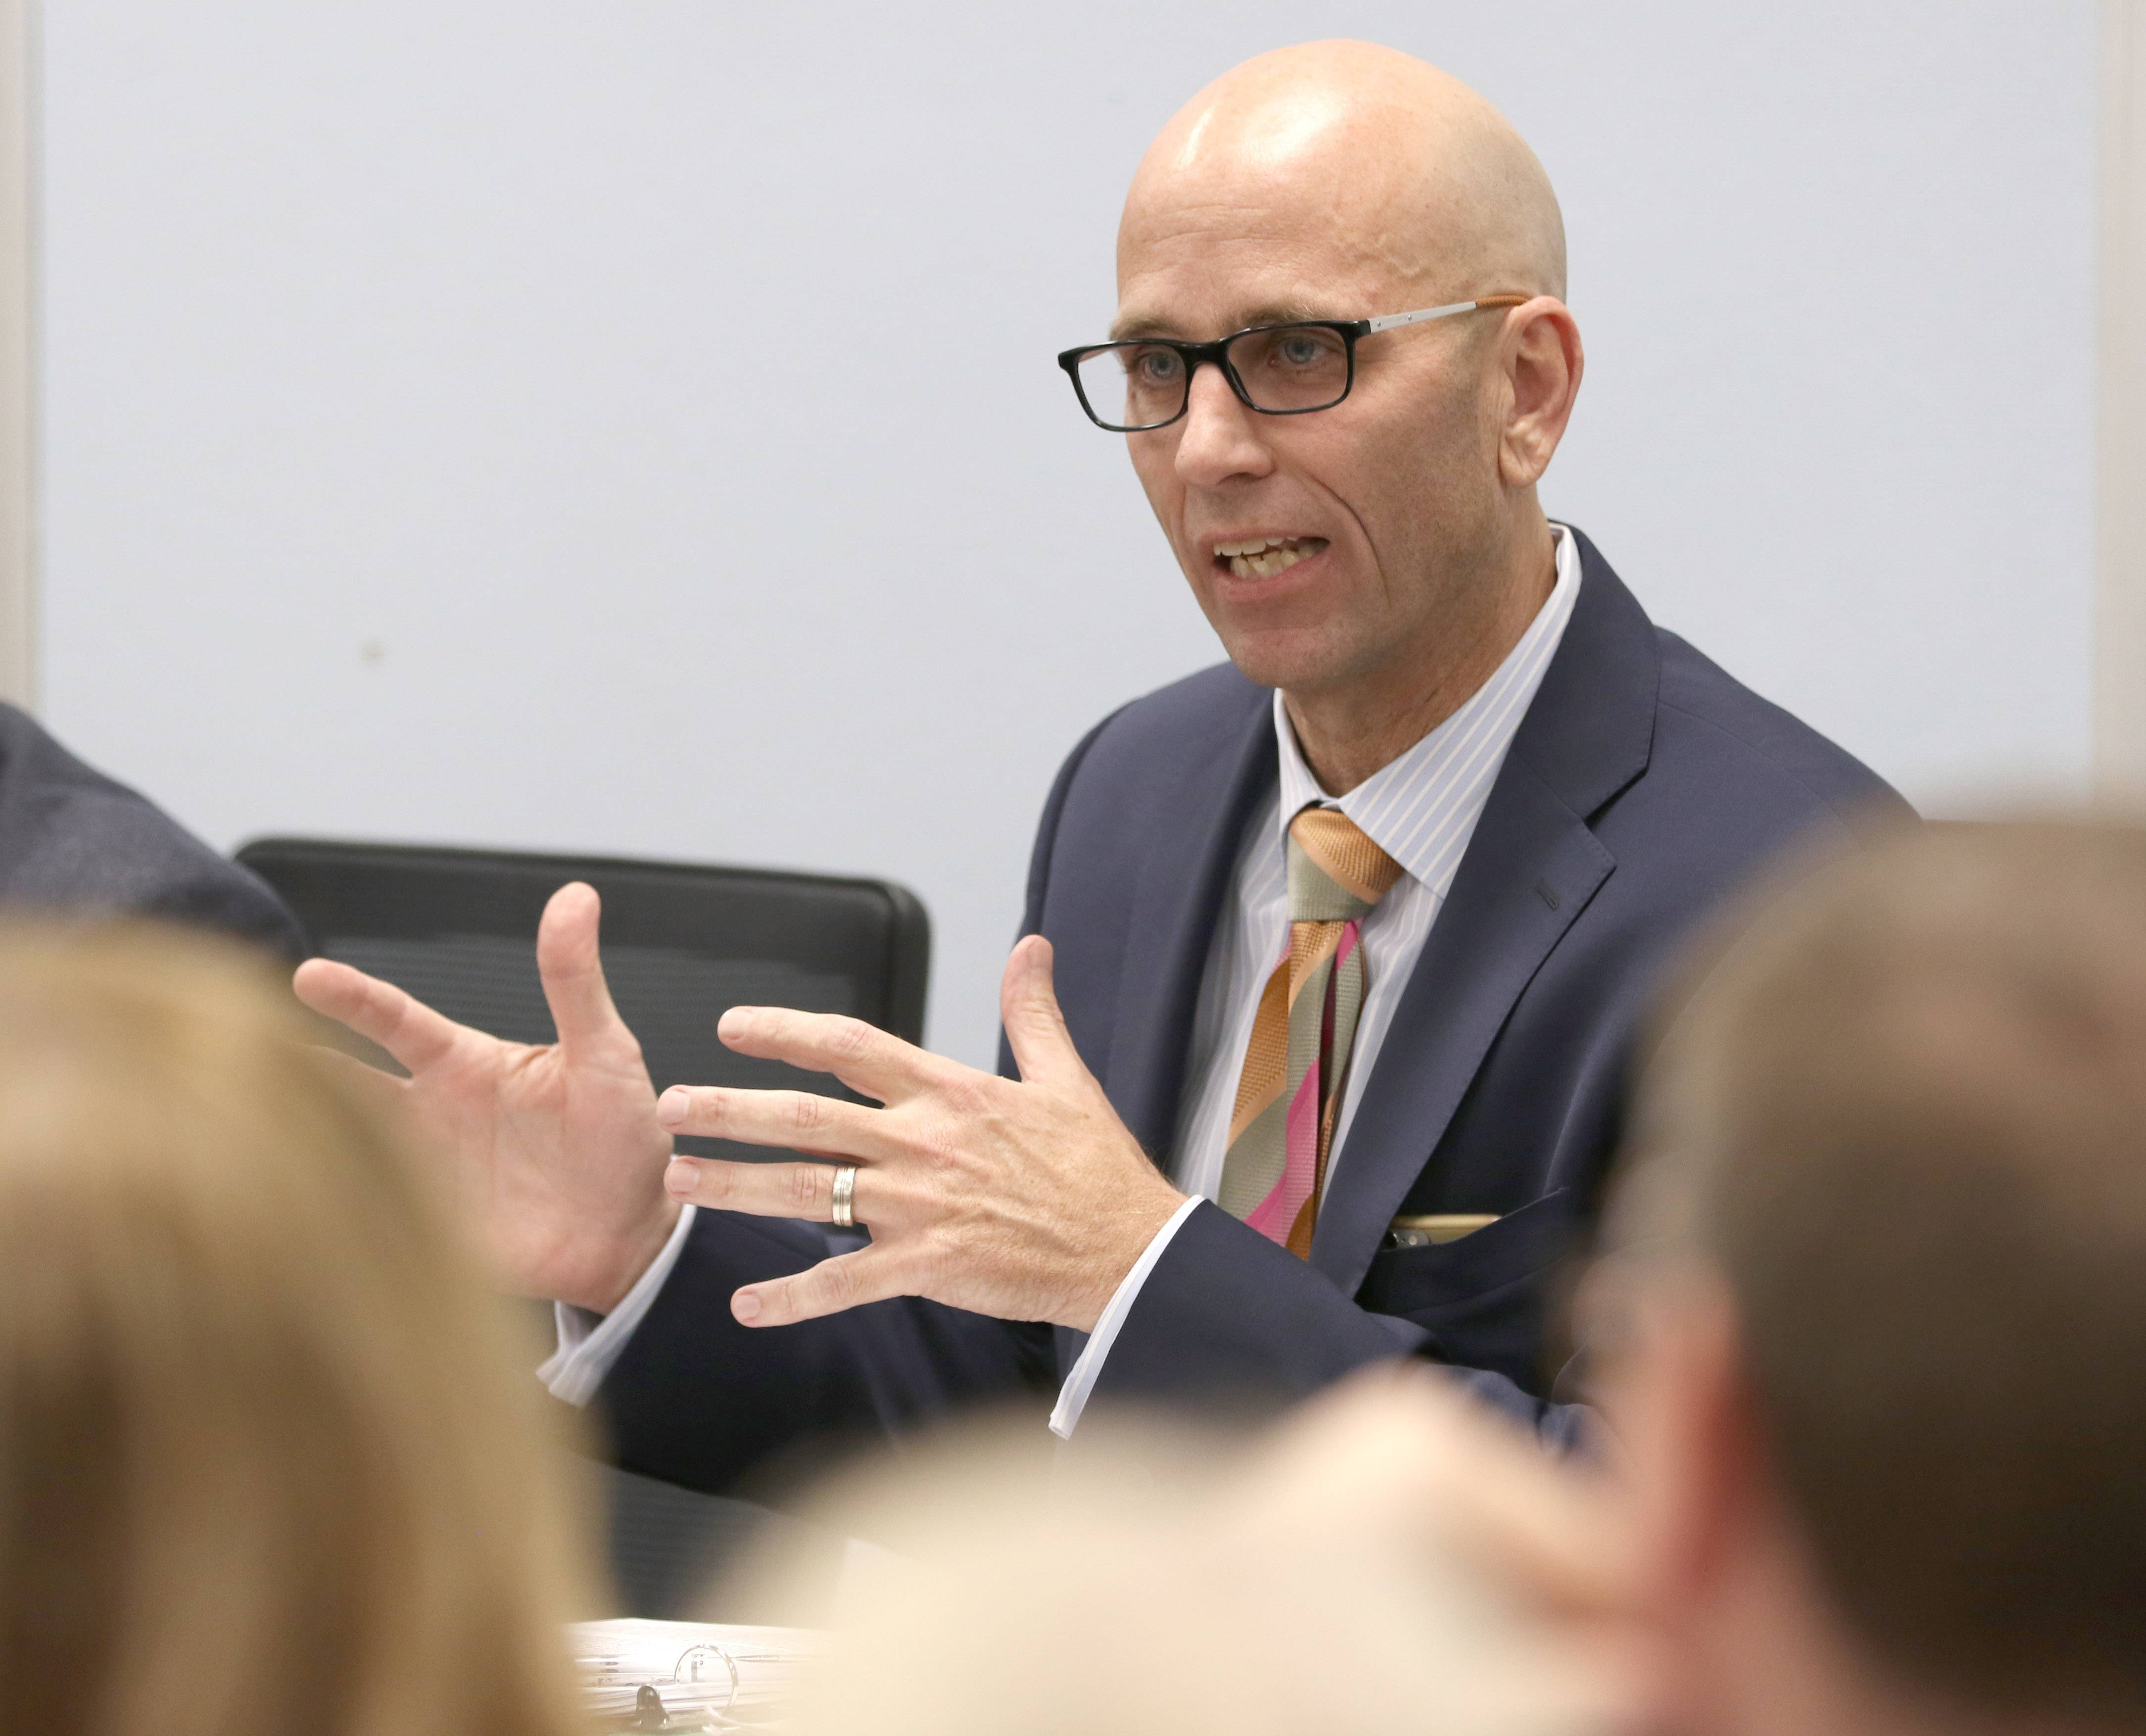 The Glen Ellyn Elementary District 41 school board will hear presentations Monday from superintendent search firms as it moves to replace Superintendent Paul Gordon.